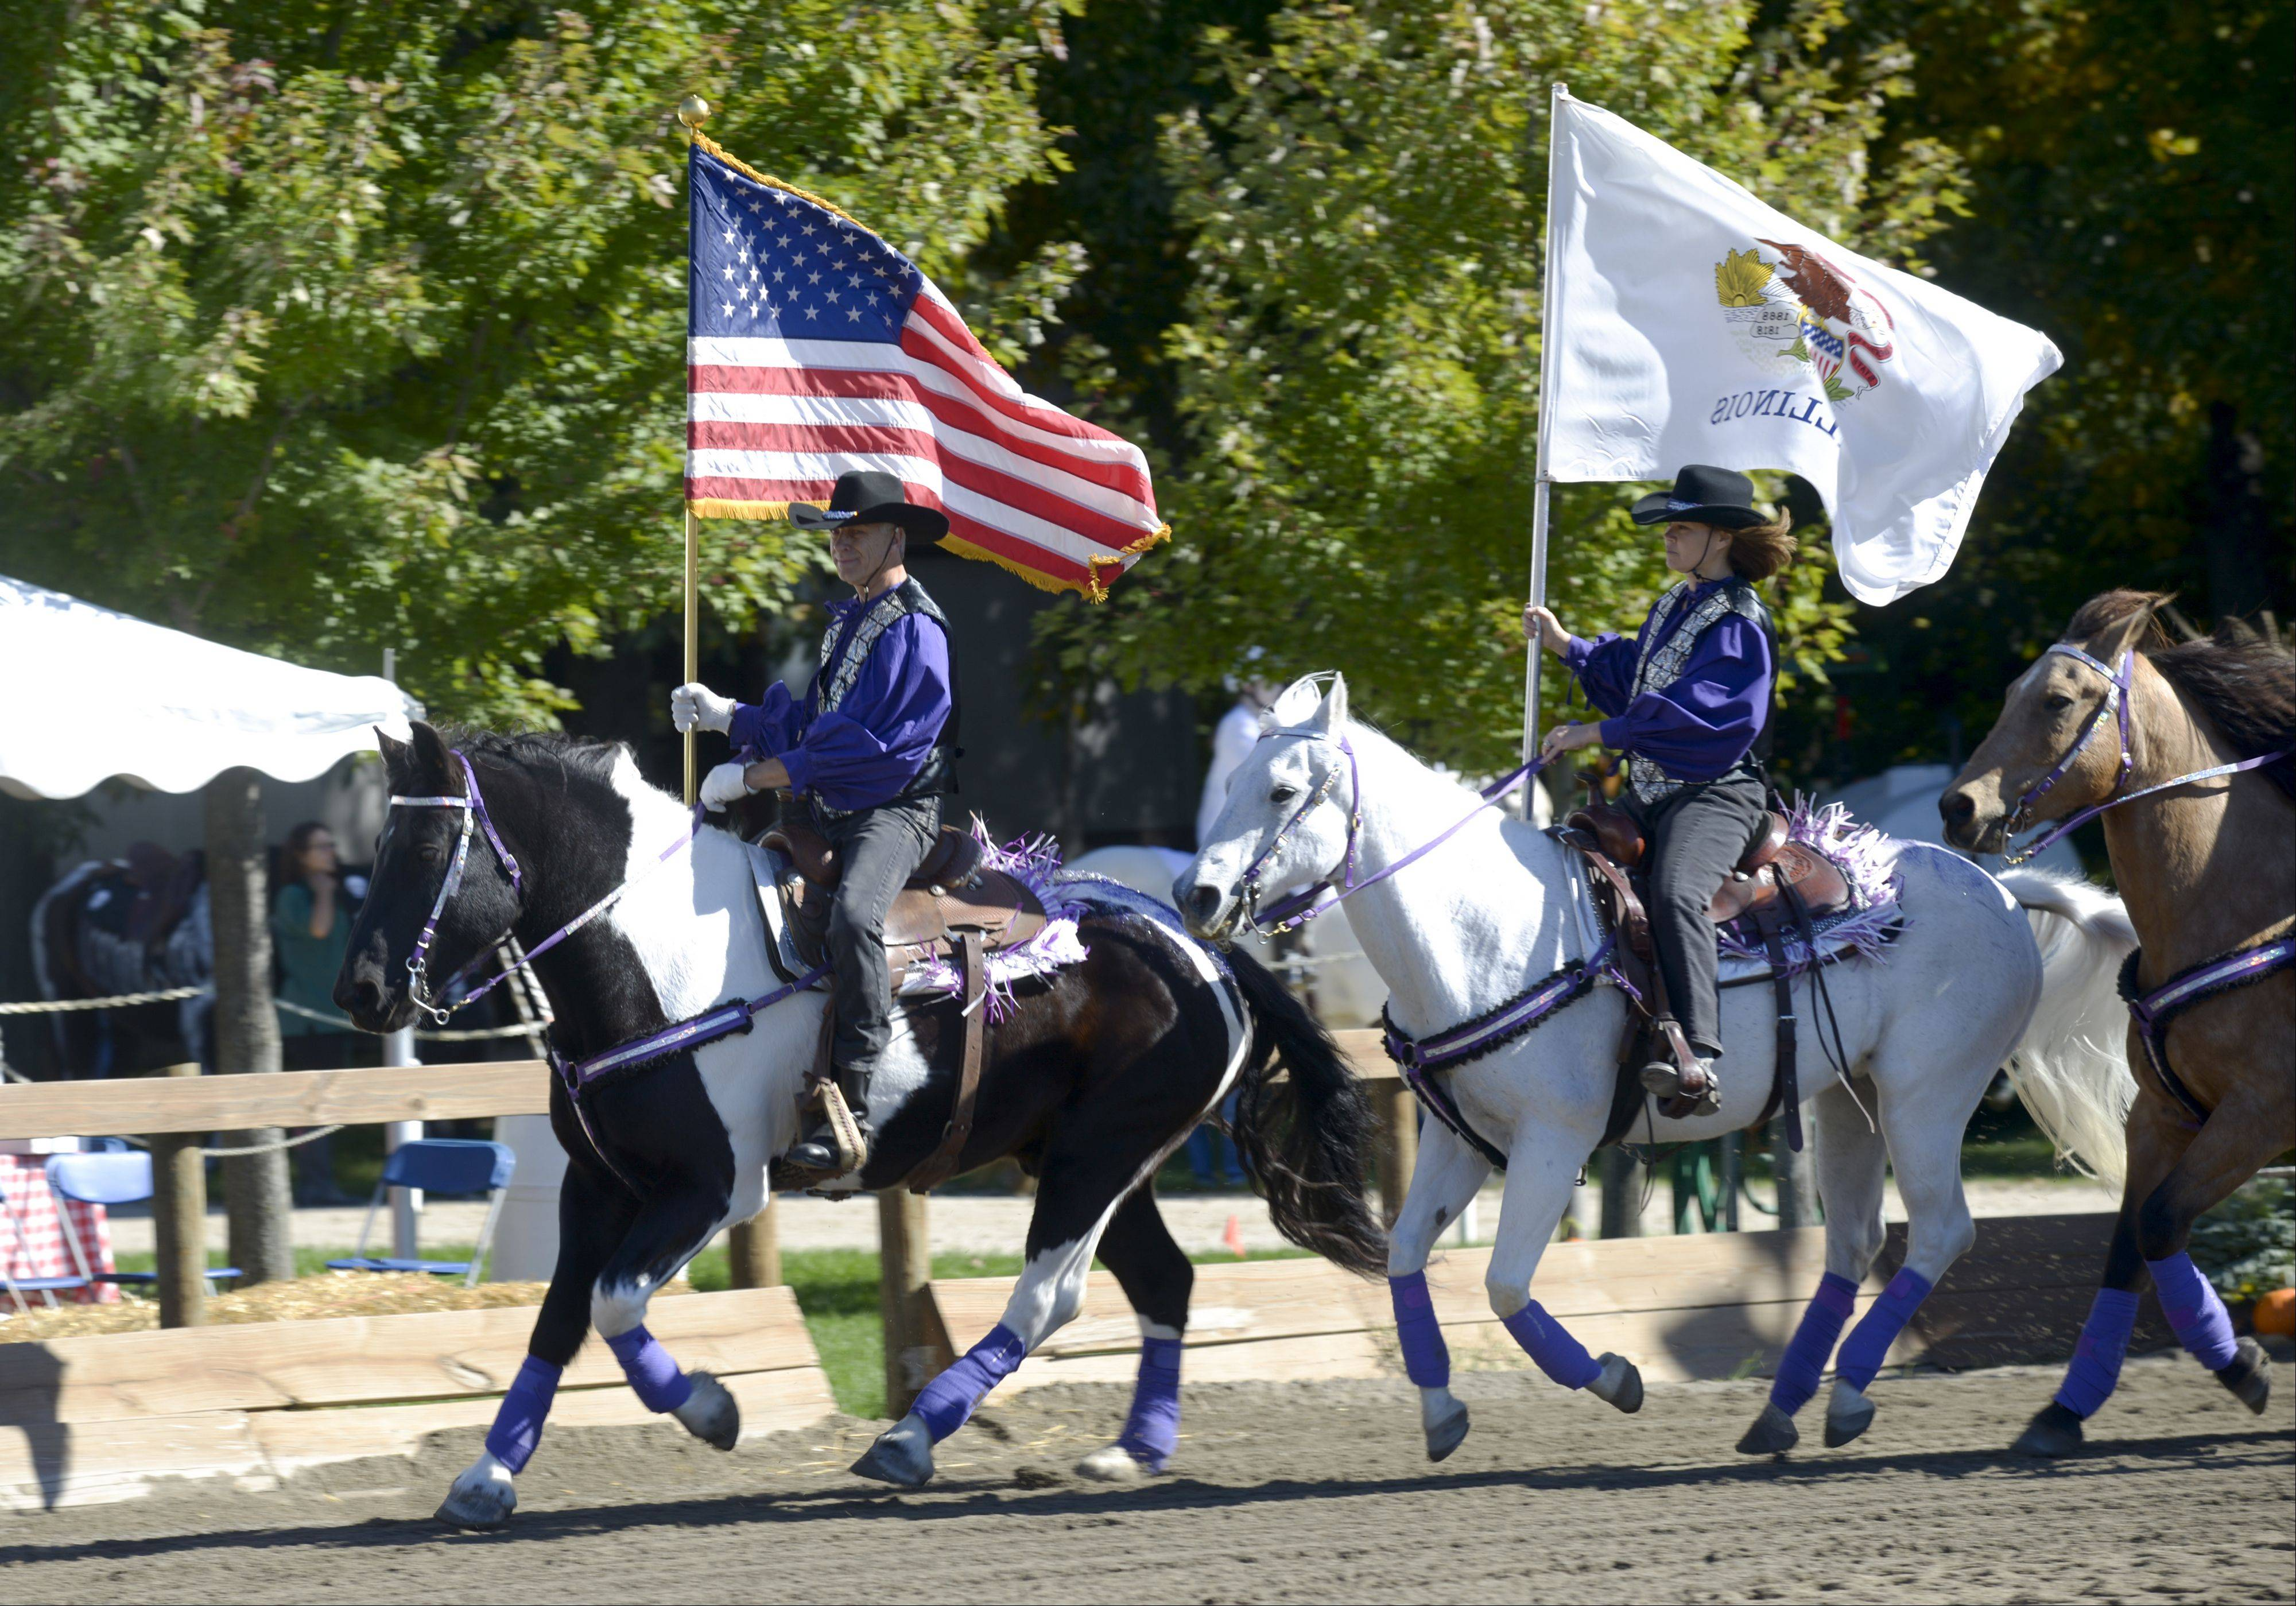 Rick Vlahos of the MidWest Renegade Equestrian Drill Team leads the team during the singing of the national anthem to kick off the Danada Fall Festival on Sunday in Wheaton.